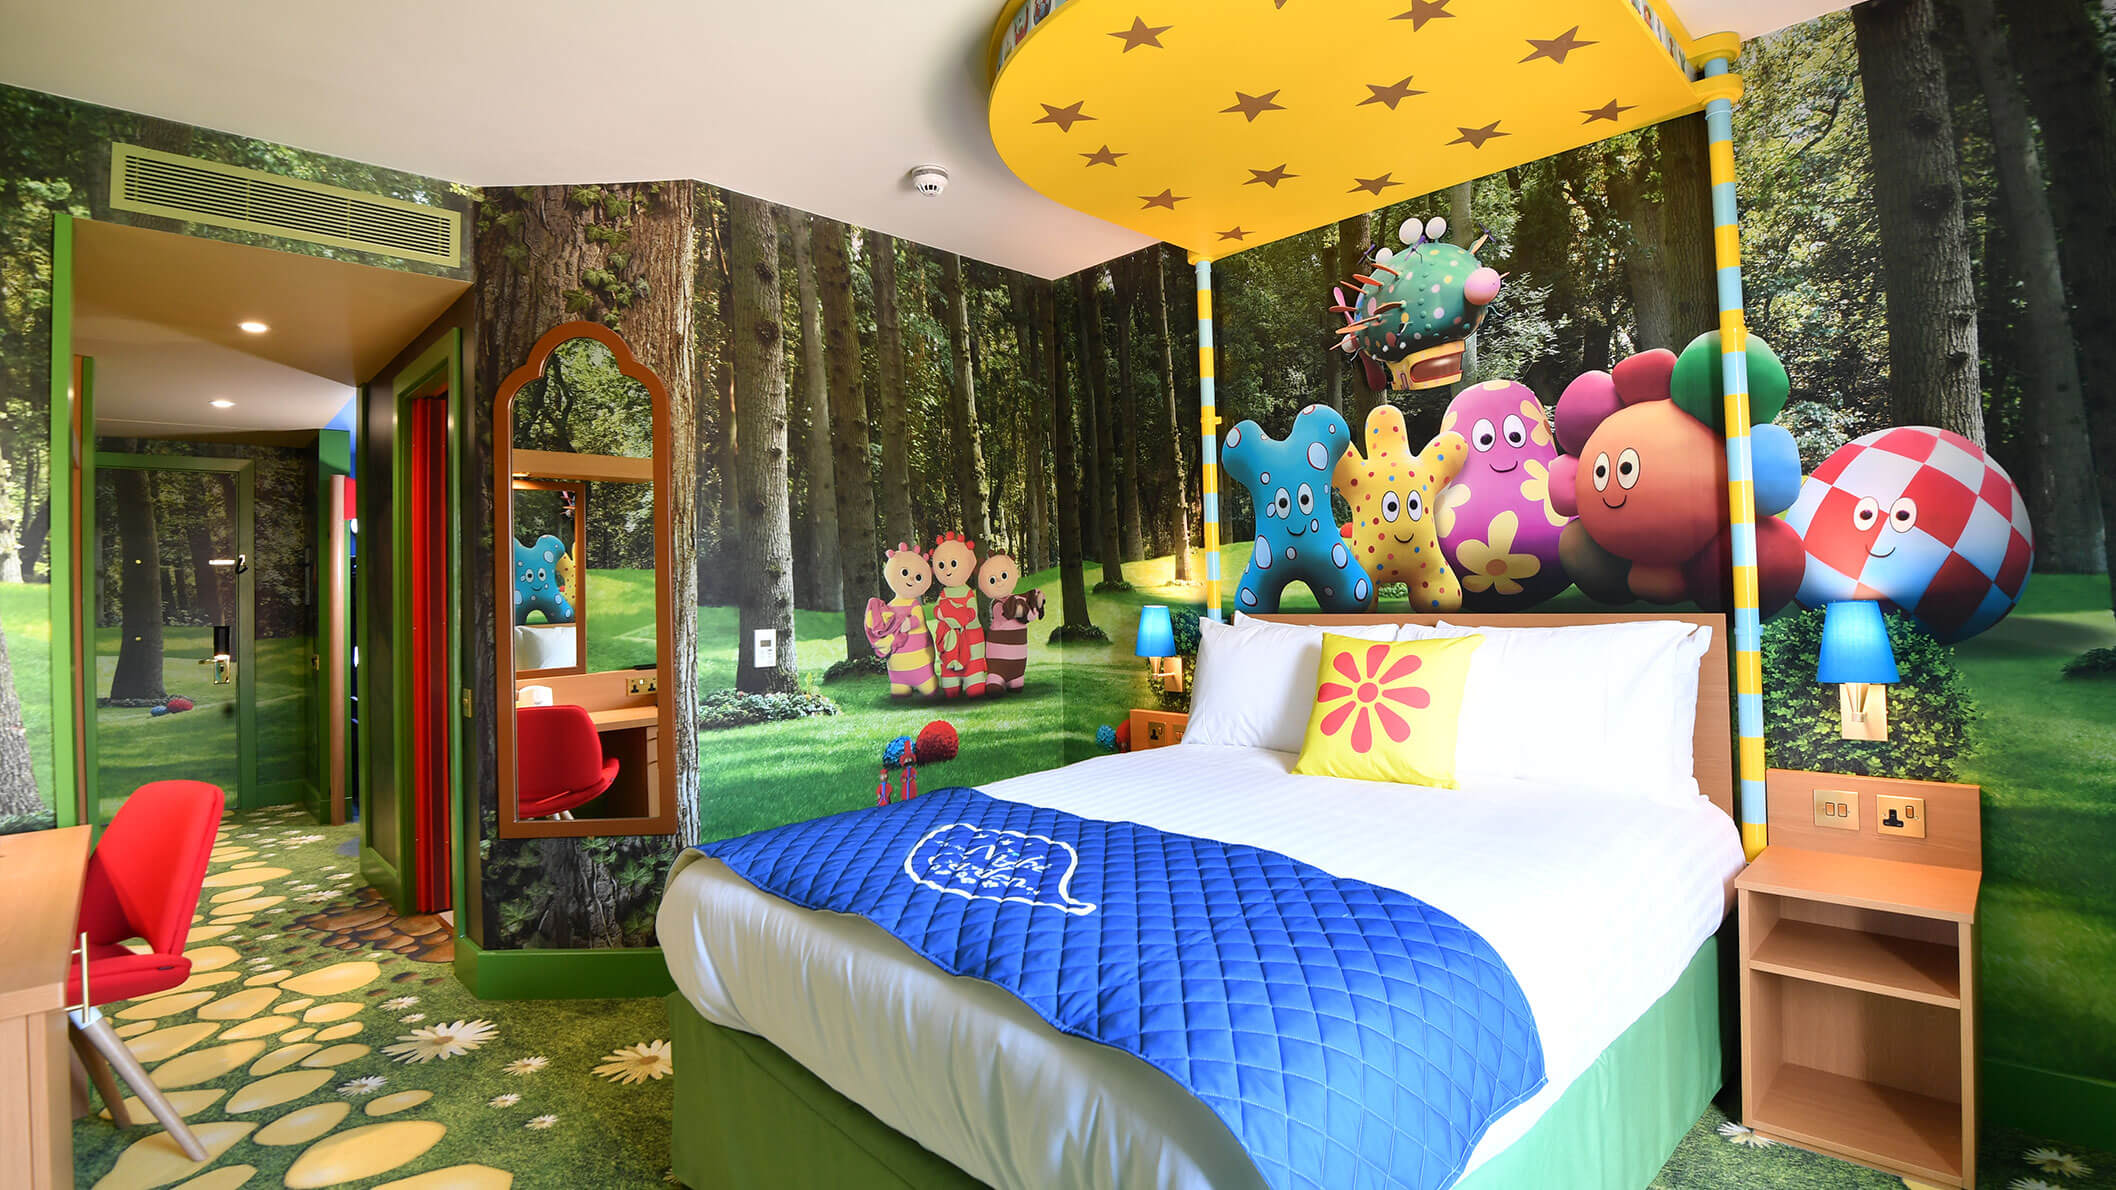 A colourful kids bedroom with wallpaper of a forest and cute characters.